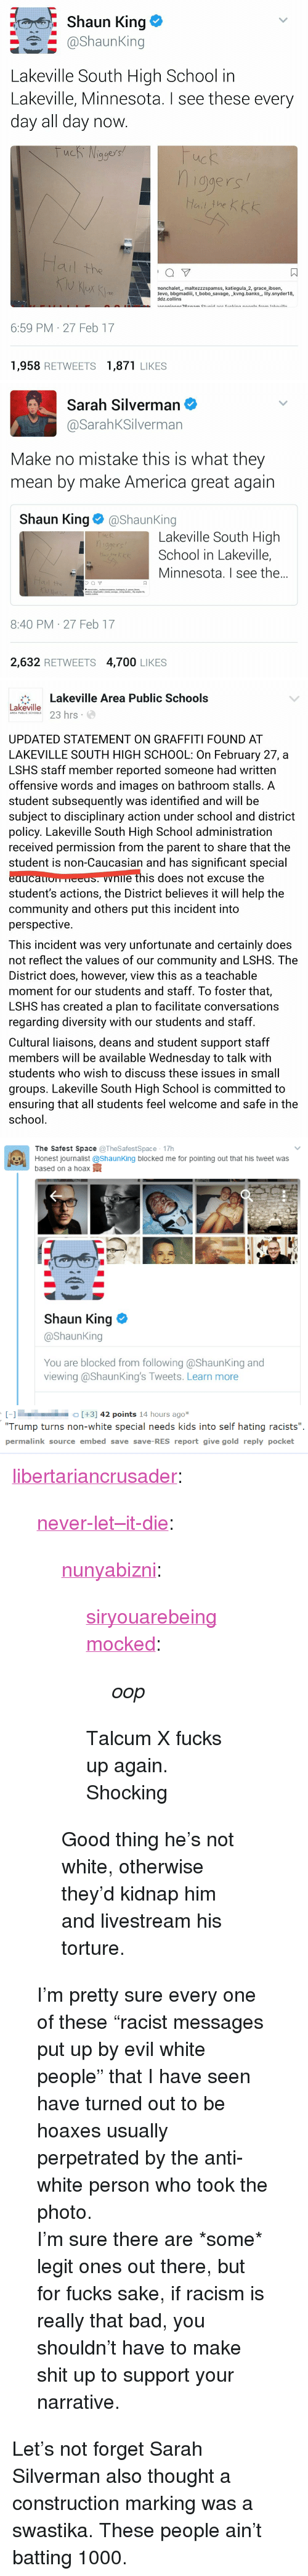 swastika: Shaun King e  @shaunking  Lakeville South High School in  Lakeville, Minnesota. I see these every  day all day now  qgers  ис  ogers  ail the  ㄇ  nonchalet, maltezzzspamss, katiegula 2, grace ibsen,  devo, bbgmadiii, t bobo savage, _kvng.banks, lily.snyder18,  ddz.collins  6:59 PM 27 Feb 17  1,958 RETWEETS1,871 LIKES   Sarah Silverman  @SarahKSilverman  Make no mistake this is what they  mean by make America great again  Shaun King@ShaunKing  Lakeville South High  School in Lakeville,  Minnesota. I see the..  hige  Hail the k  aul the  只  8:40 PM 27 Feb 17  2,632 RETWEETS 4,700 LIKES   臺Lakeville Area Public Schools  Lakeville  ake 3 hrs  AREA PUBLIC SCHOOLS  UPDATED STATEMENT ON GRAFFITI FOUND AT  LAKEVILLE SOUTH HIGH SCHOOL: On February 27, a  LSHS staff member reported someone had written  offensive words and images on bathroom stalls. A  student subsequently was identified and will be  subject to disciplinary action under school and district  policy. Lakeville South High School administration  received permission from the parent to share that the  student is non-Caucasian and has significant special  eaucauom HEES nle this does not excuse the  student's actions, the District believes it will help the  community and others put this incident into  perspective  This incident was very unfortunate and certainly does  not reflect the values of our community and LSHS. The  District does, however, view this as a teachable  moment for our students and staff. To foster that,  LSHS has created a plan to facilitate conversations  regarding diversity with our students and staff  Cultural liaisons, deans and student support staff  members will be available Wednesday to talk with  students who wish to discuss these issues in small  groups. Lakeville South High School is committed to  ensuring that all students feel welcome and safe in the  school   The Safest Space TheSafestSpace 17h  Honest journalist @ShaunKing blocked me for pointing out that his tweet was  based 